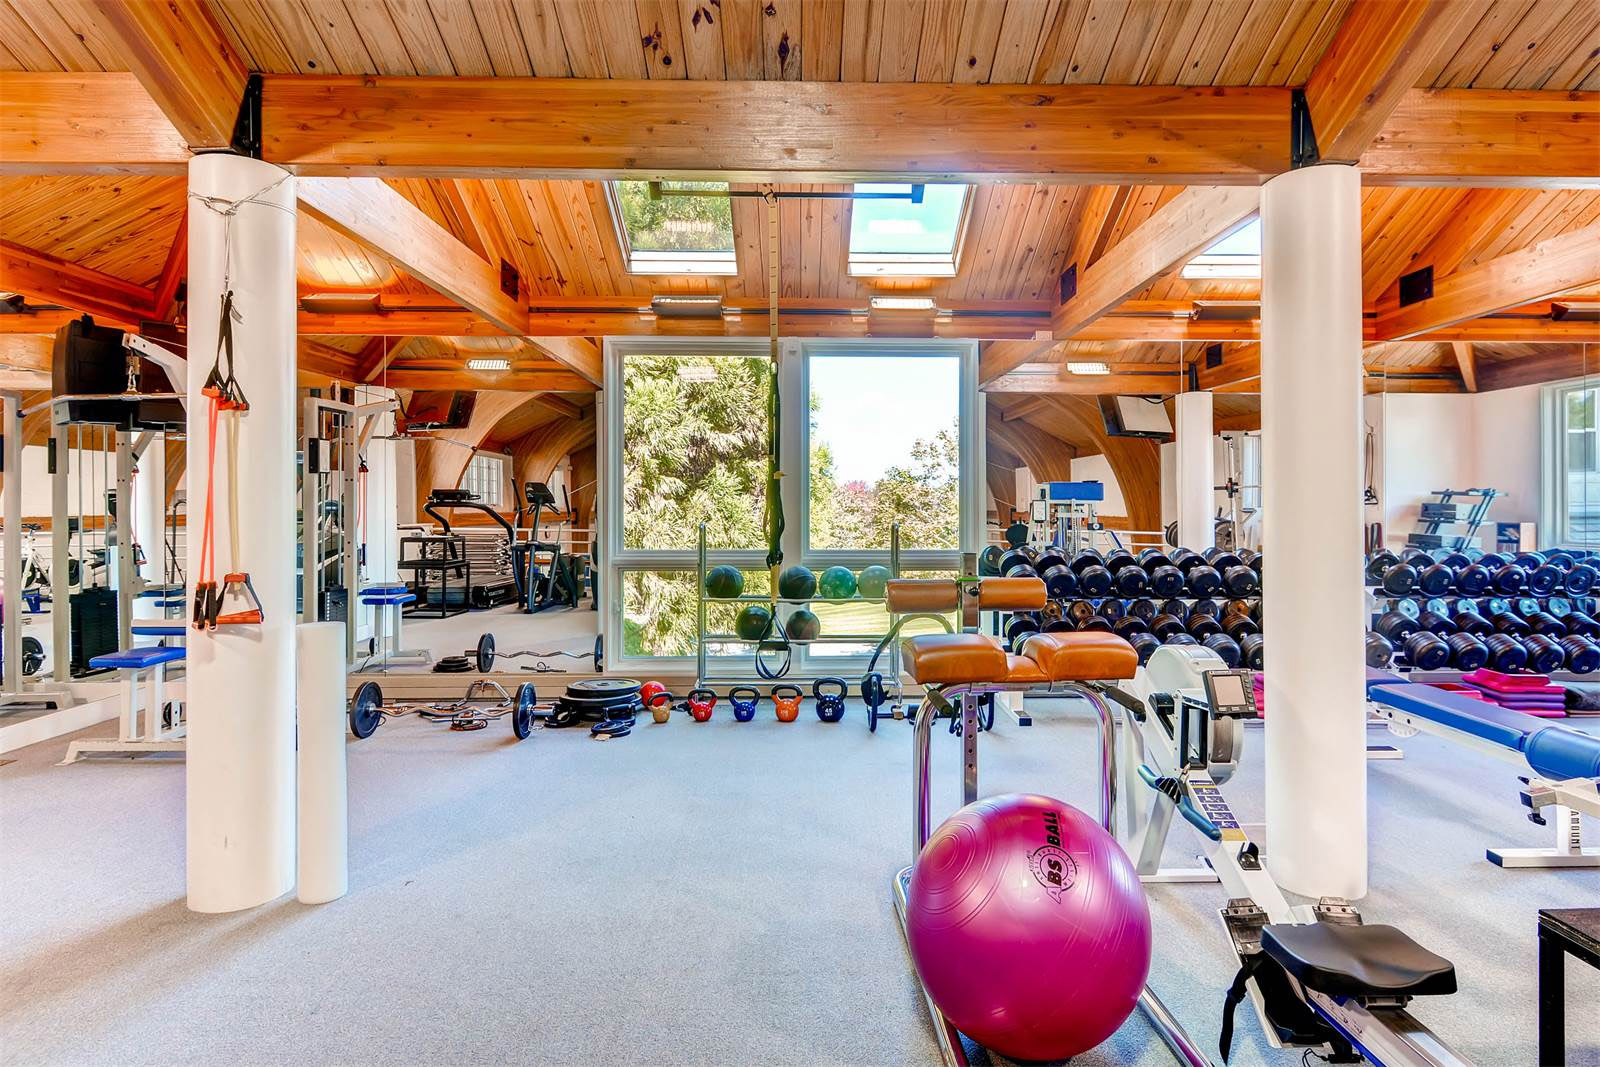 Cal Ripken Jr.'s 25-acre estates features an excercise room, trainer's room, locker room, indoor basketball court and a baseball diamond. (Courtesy Monument Sotheby's International Realty)